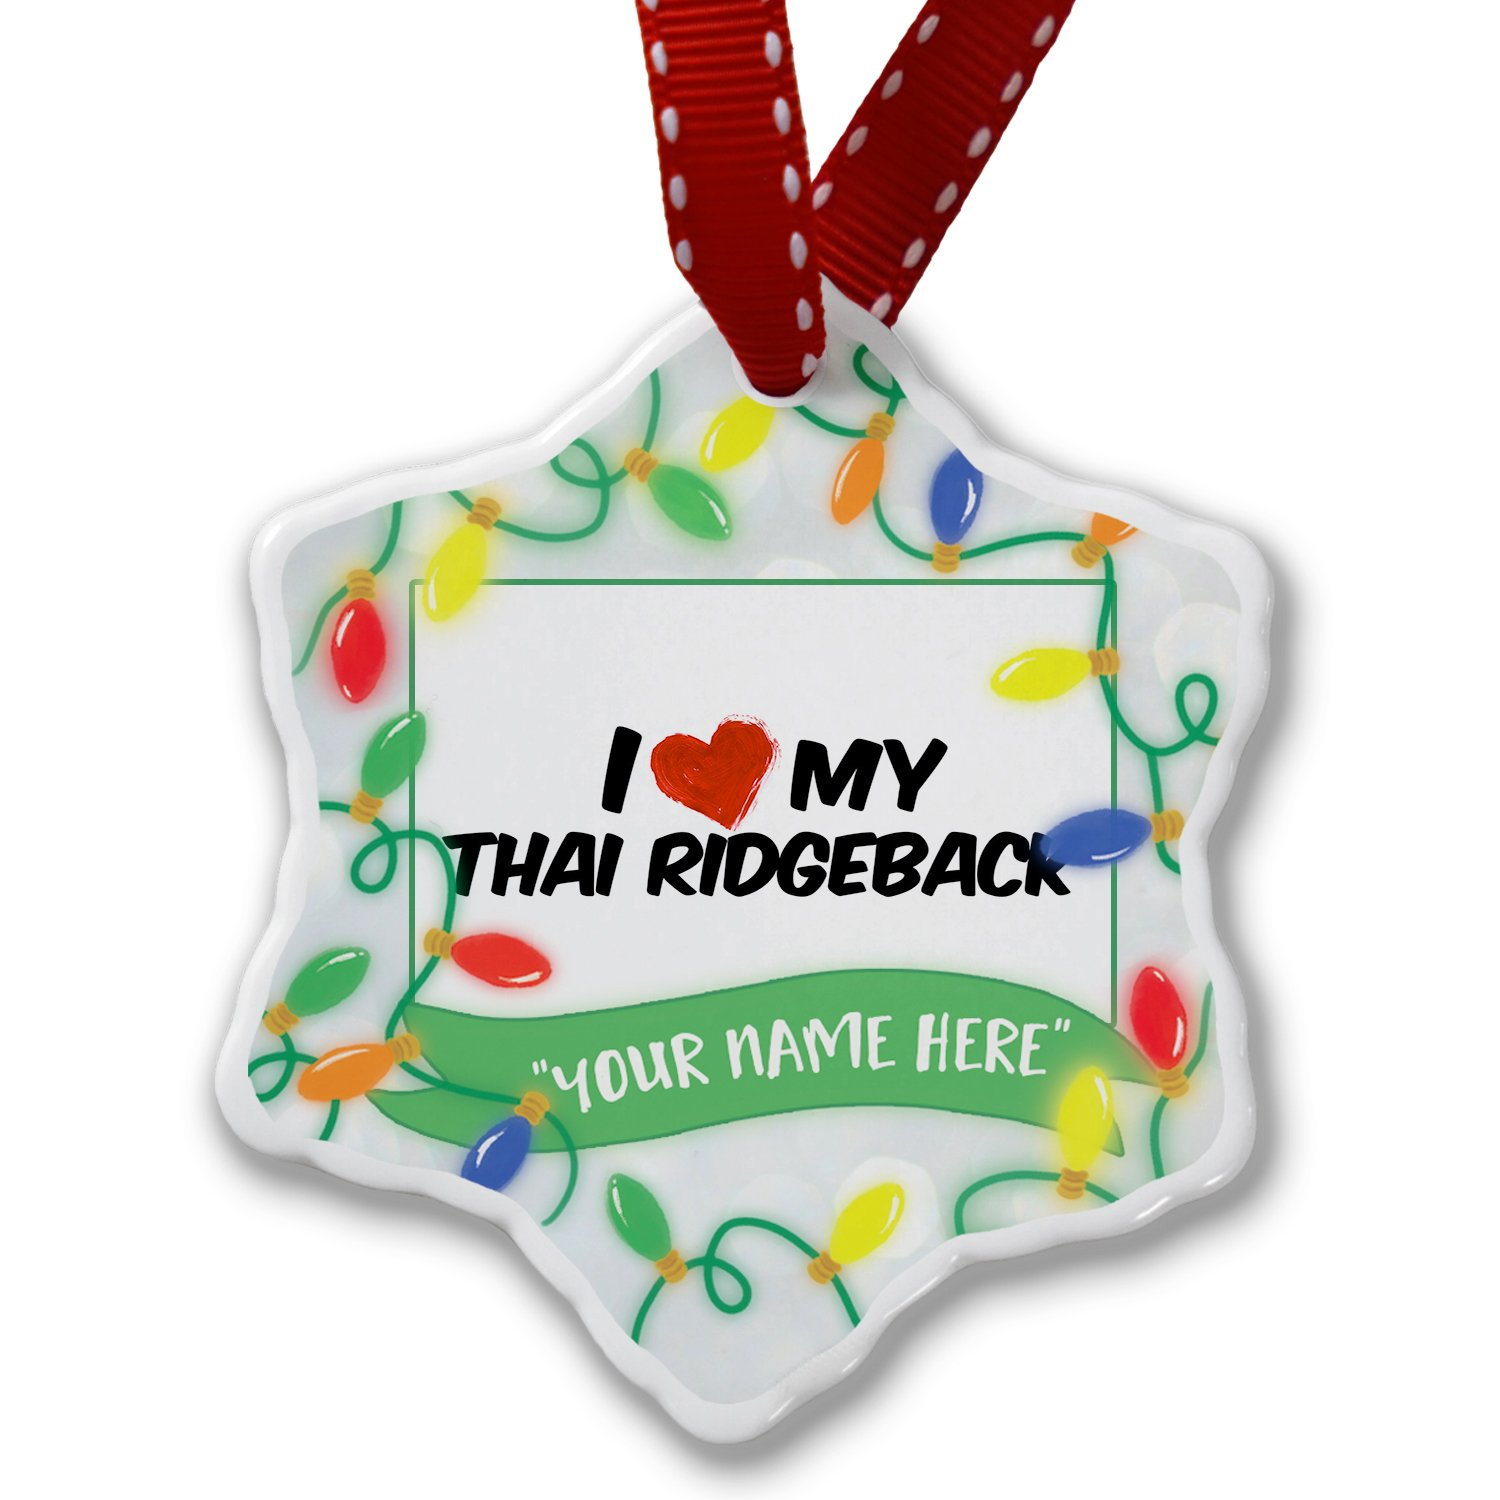 Personalized Name Christmas Ornament, I Love my Thai Ridgeback Dog from Thailand NEONBLOND